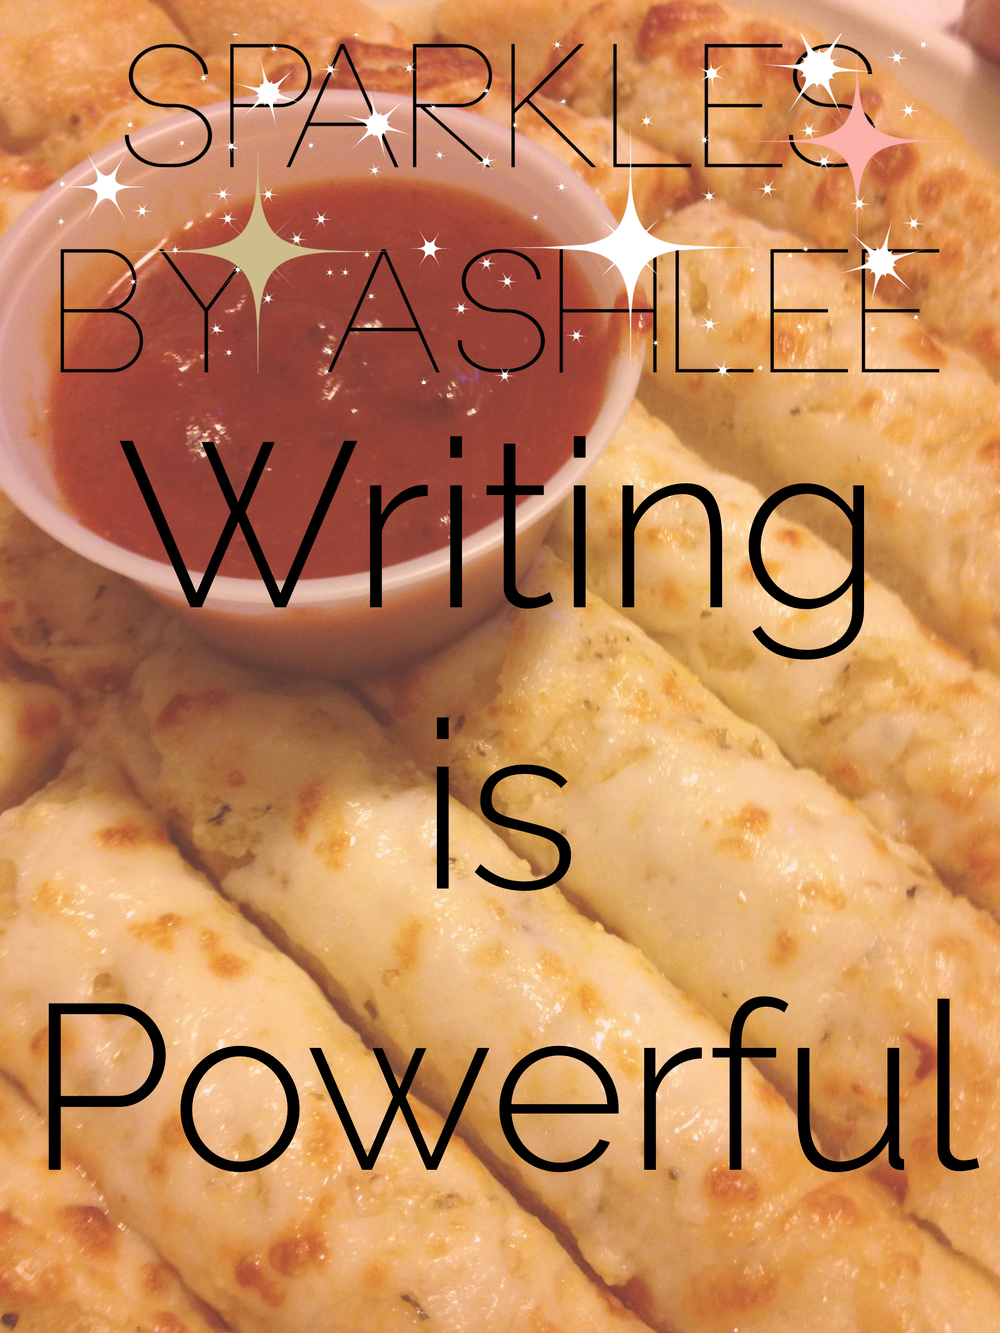 Writing-is-Powerful-Sparkles-by-Ashlee.jpg